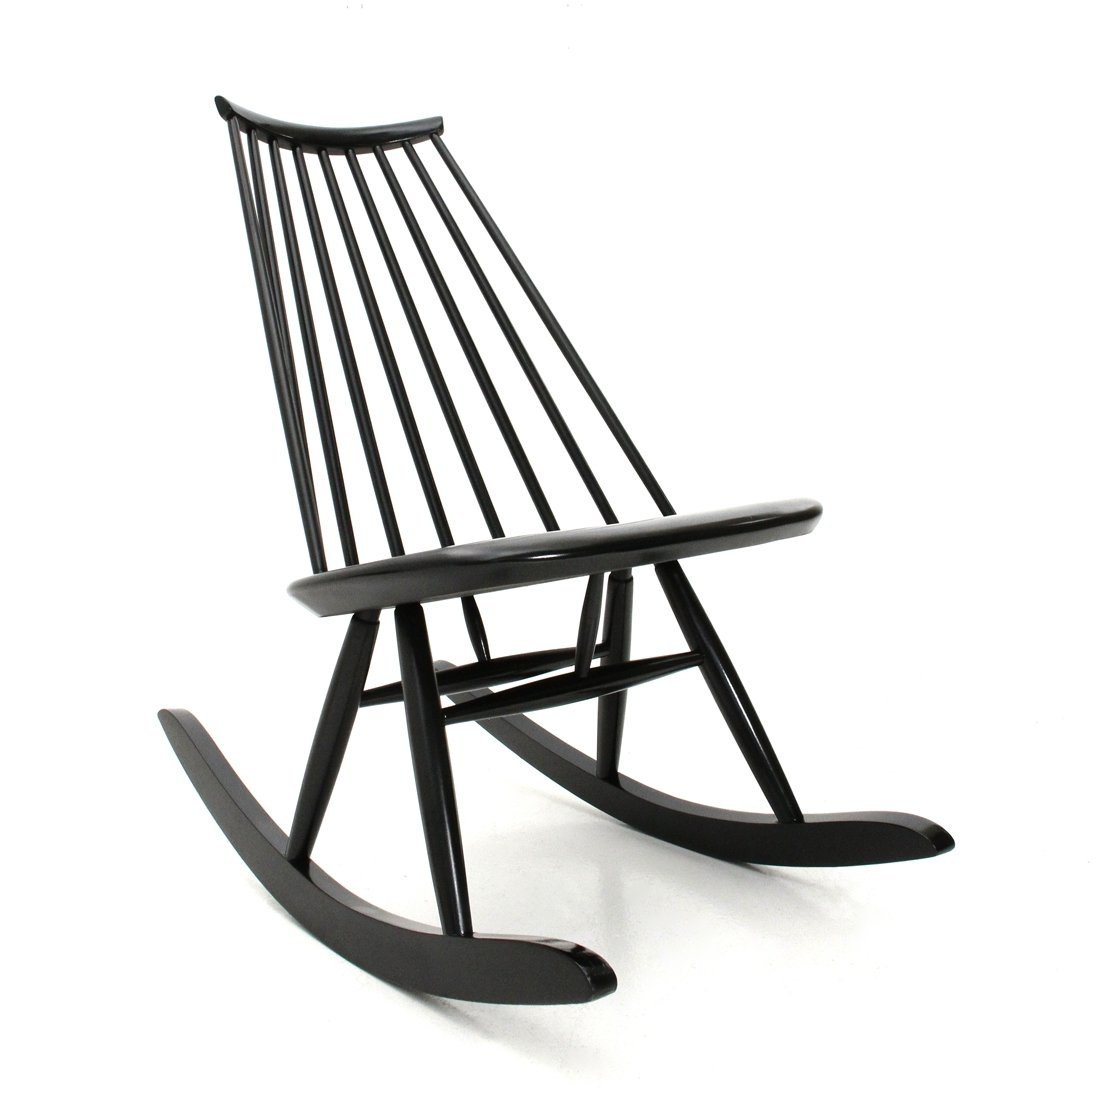 Groovy Midcentury Modern Black Mademoiselle Rocking Chair By Ilmari Tapiovaara For Artek 1950S Creativecarmelina Interior Chair Design Creativecarmelinacom